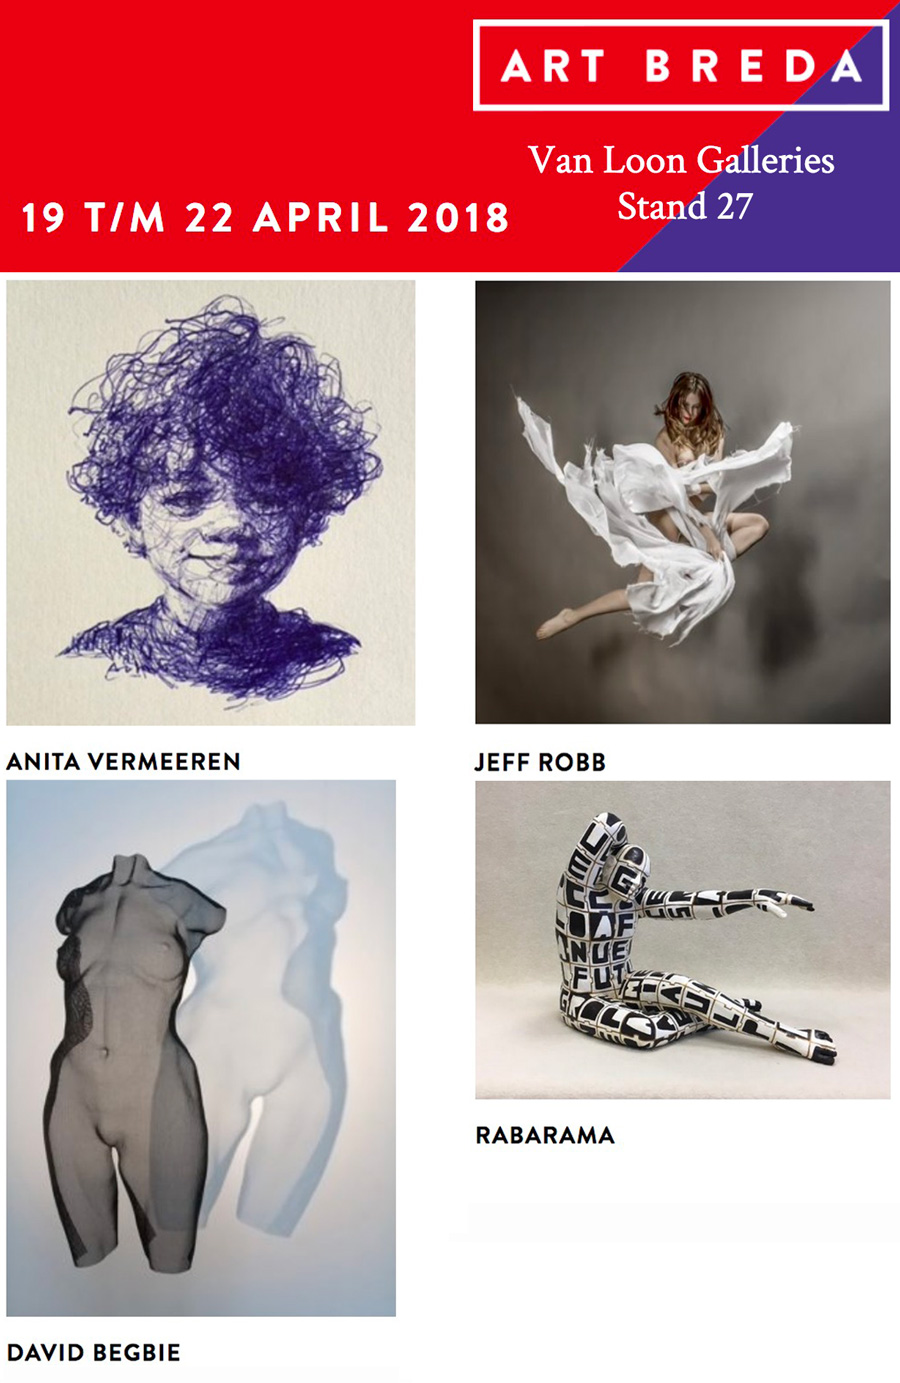 Art Fair announcement 2018 with images of artworks by David Begbie, Jeff Robb and Rabarama